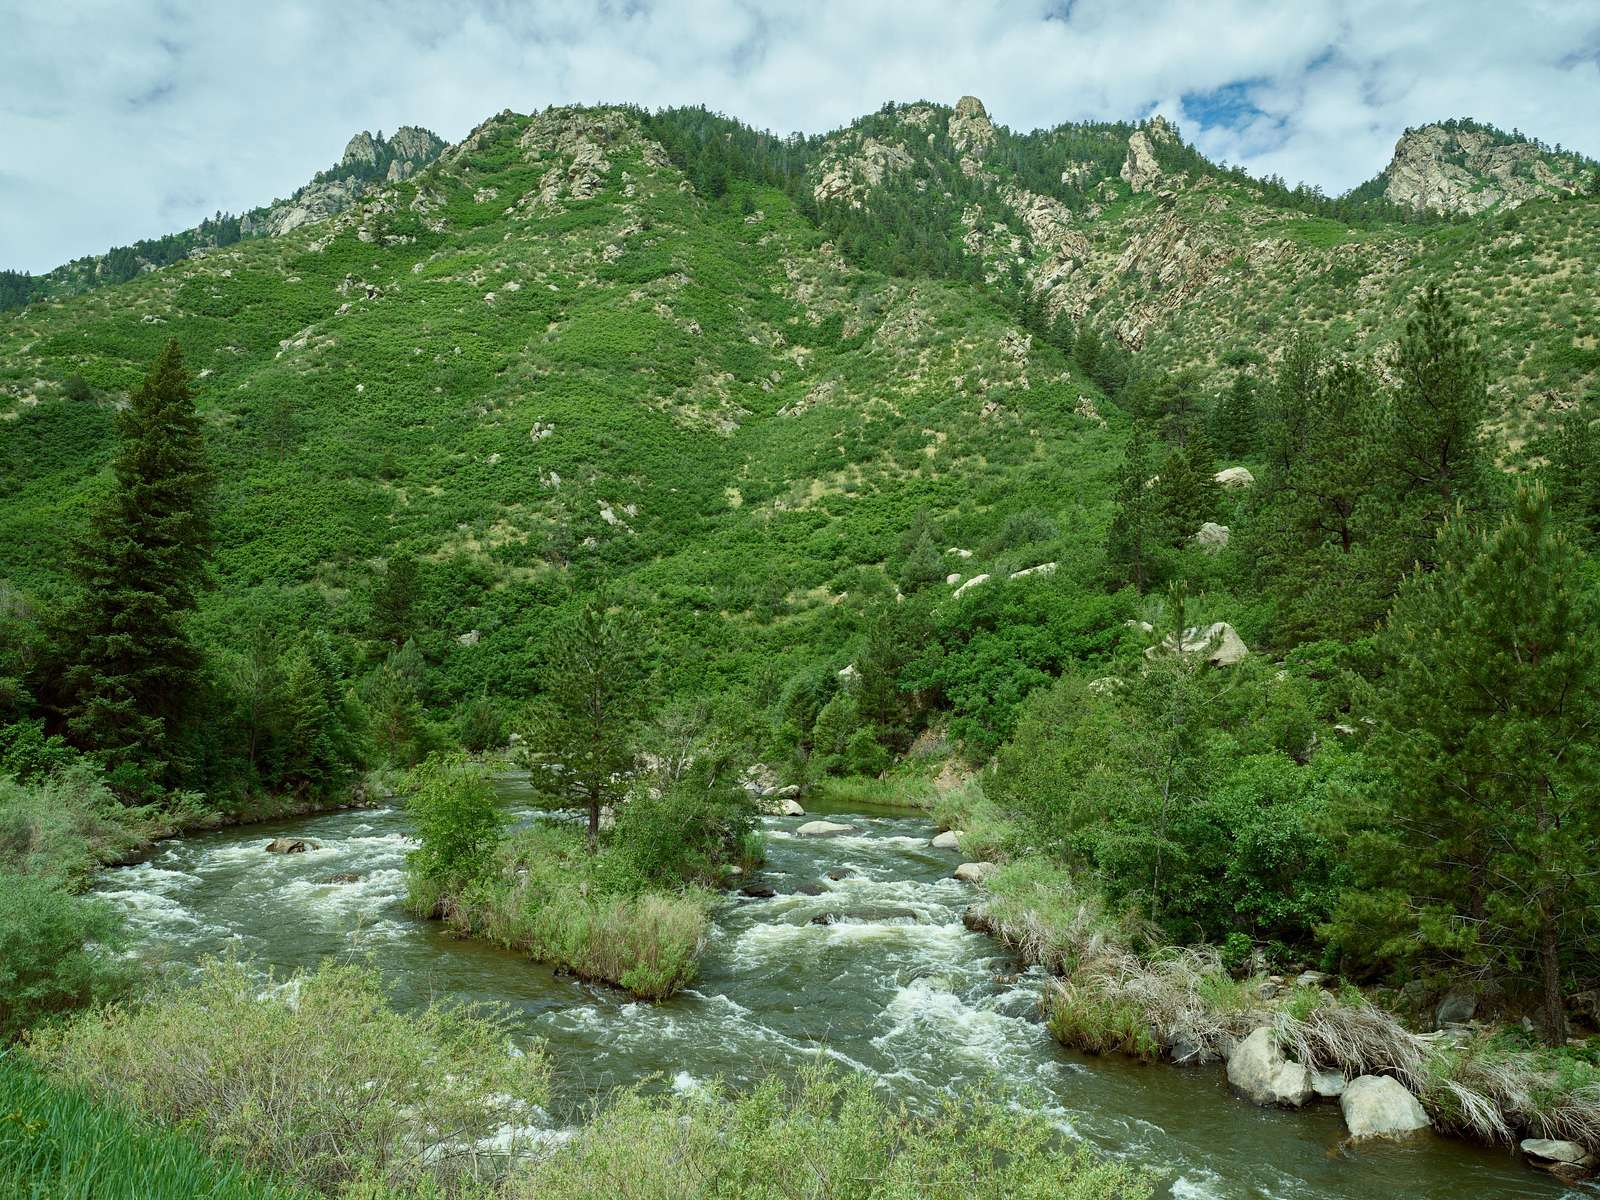 View of the rushing South Platte River in Waterton Canyon in Jefferson County, Colorado, one of metropolitan Denver's favorite workout venues, where bicylists, hikers, walkers, and horseback riders exercise in a beautiful, invigorating, patrolled environment managed by Denver Water, the city's public water utility, and the U.S. Forest Service